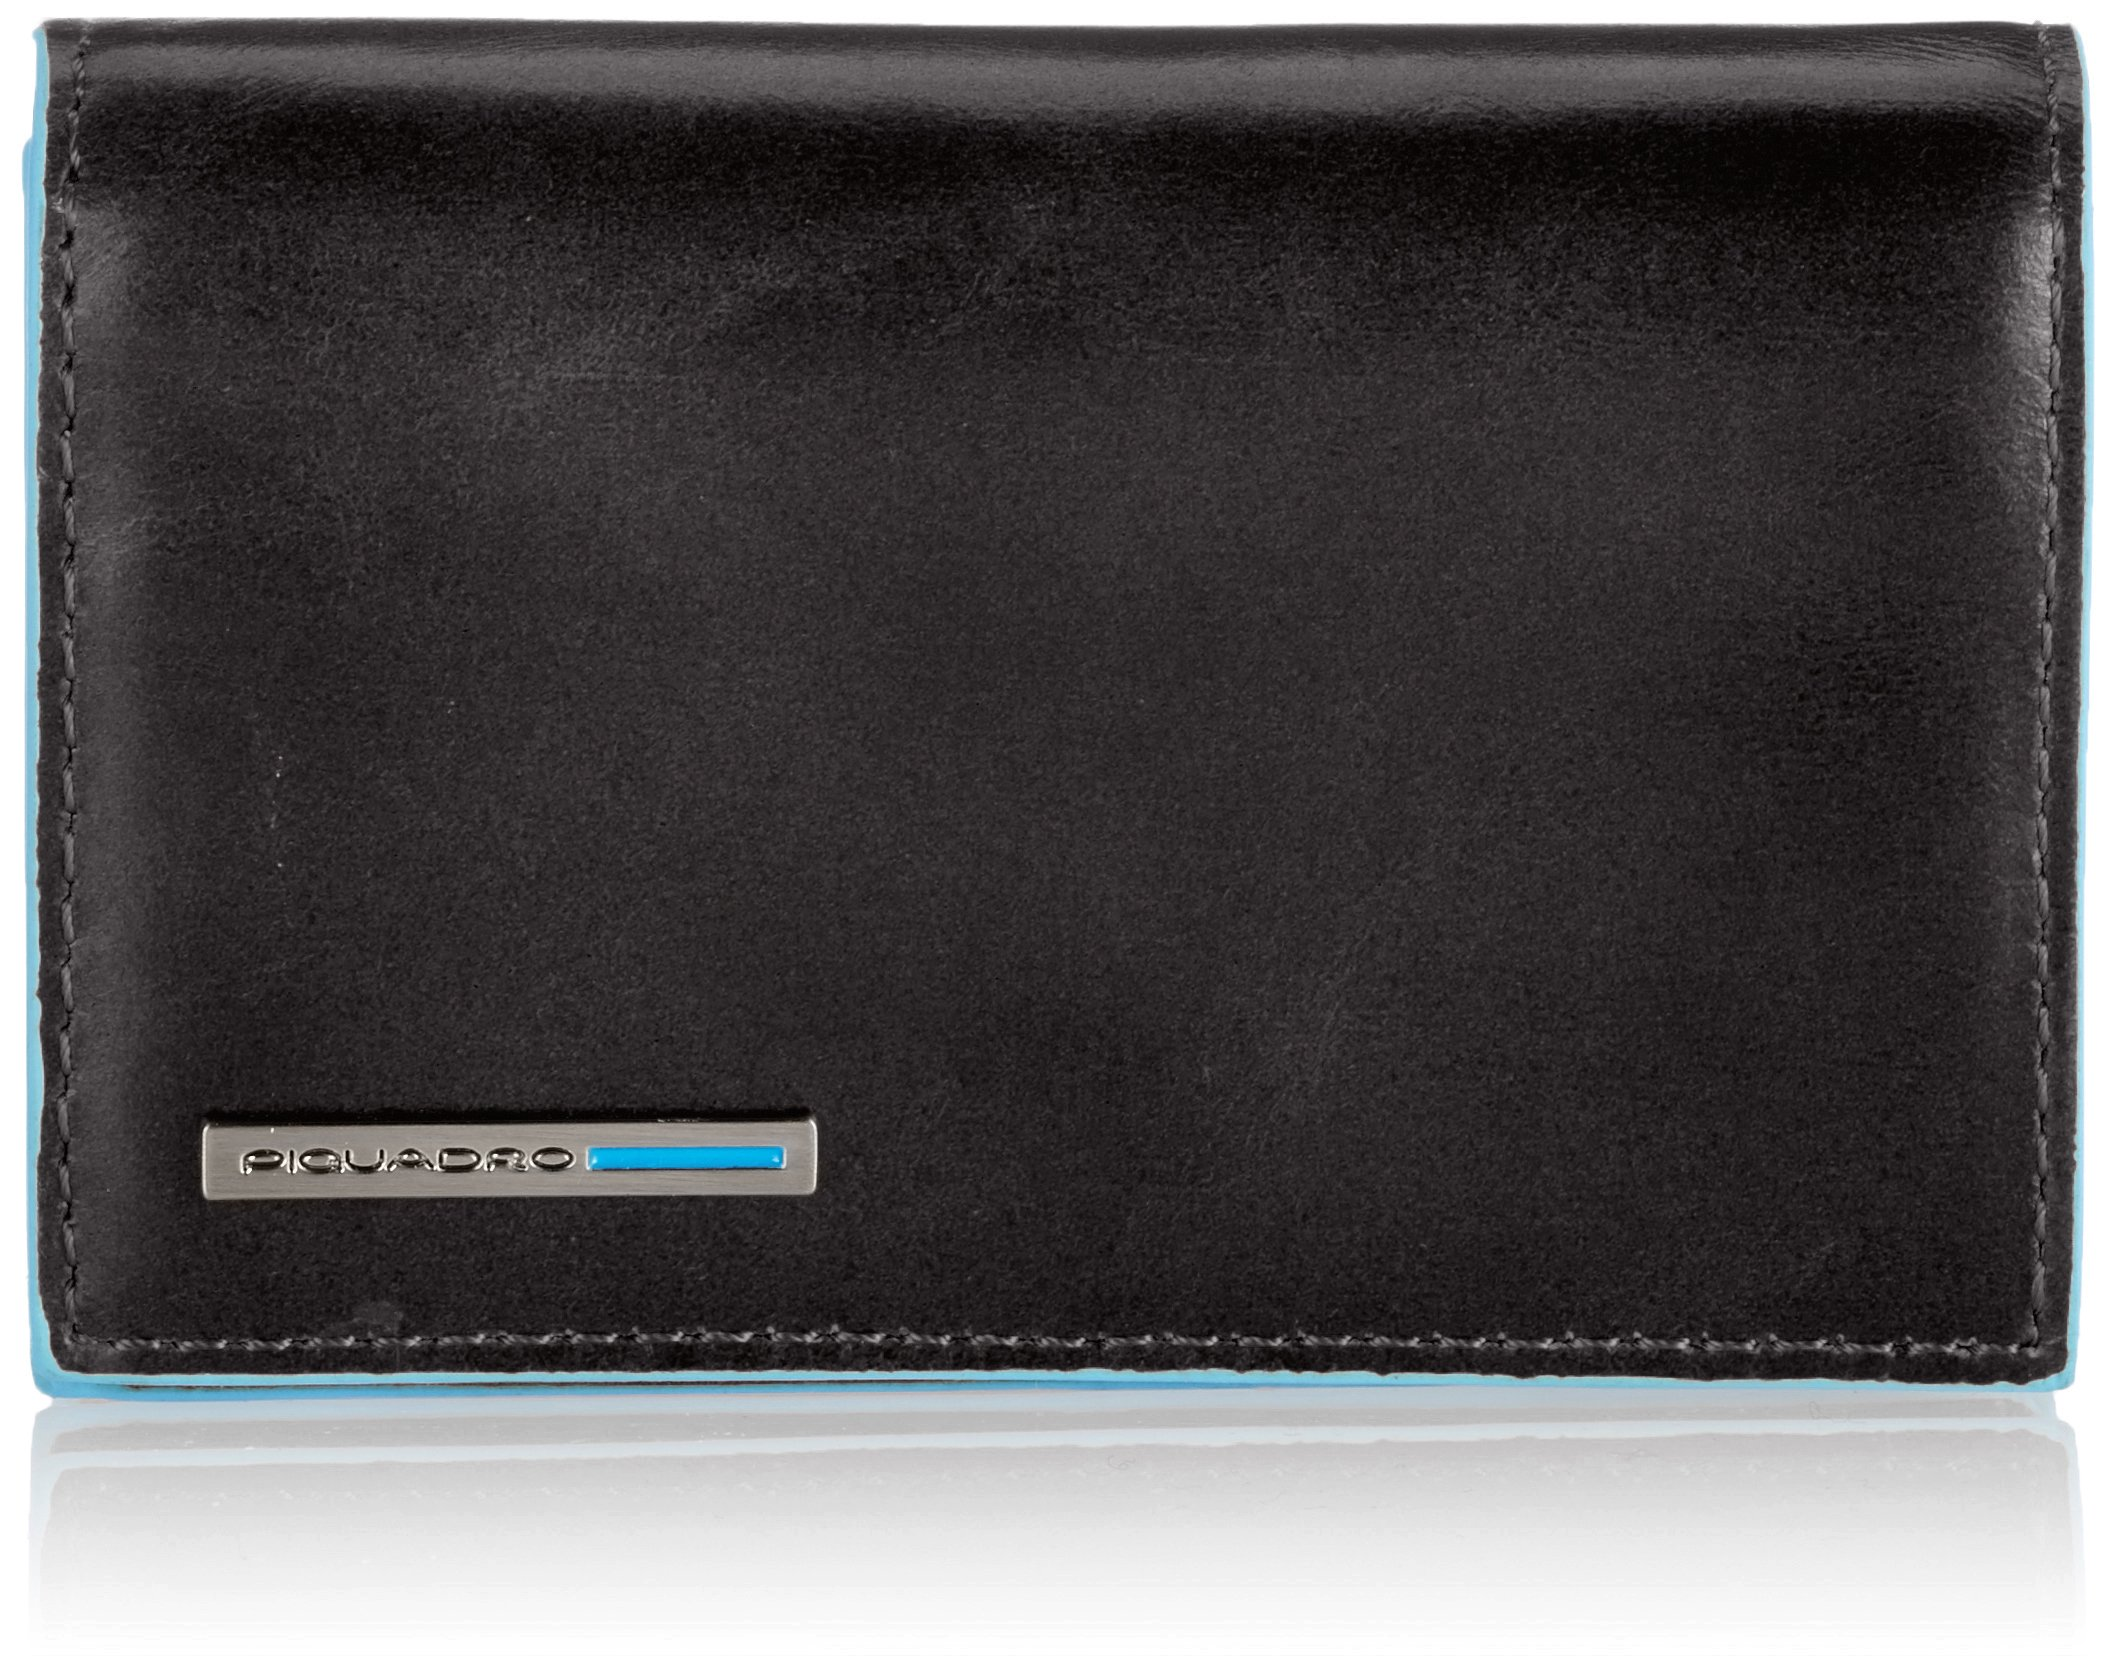 Piquadro Business Card Holder, Black, One Size